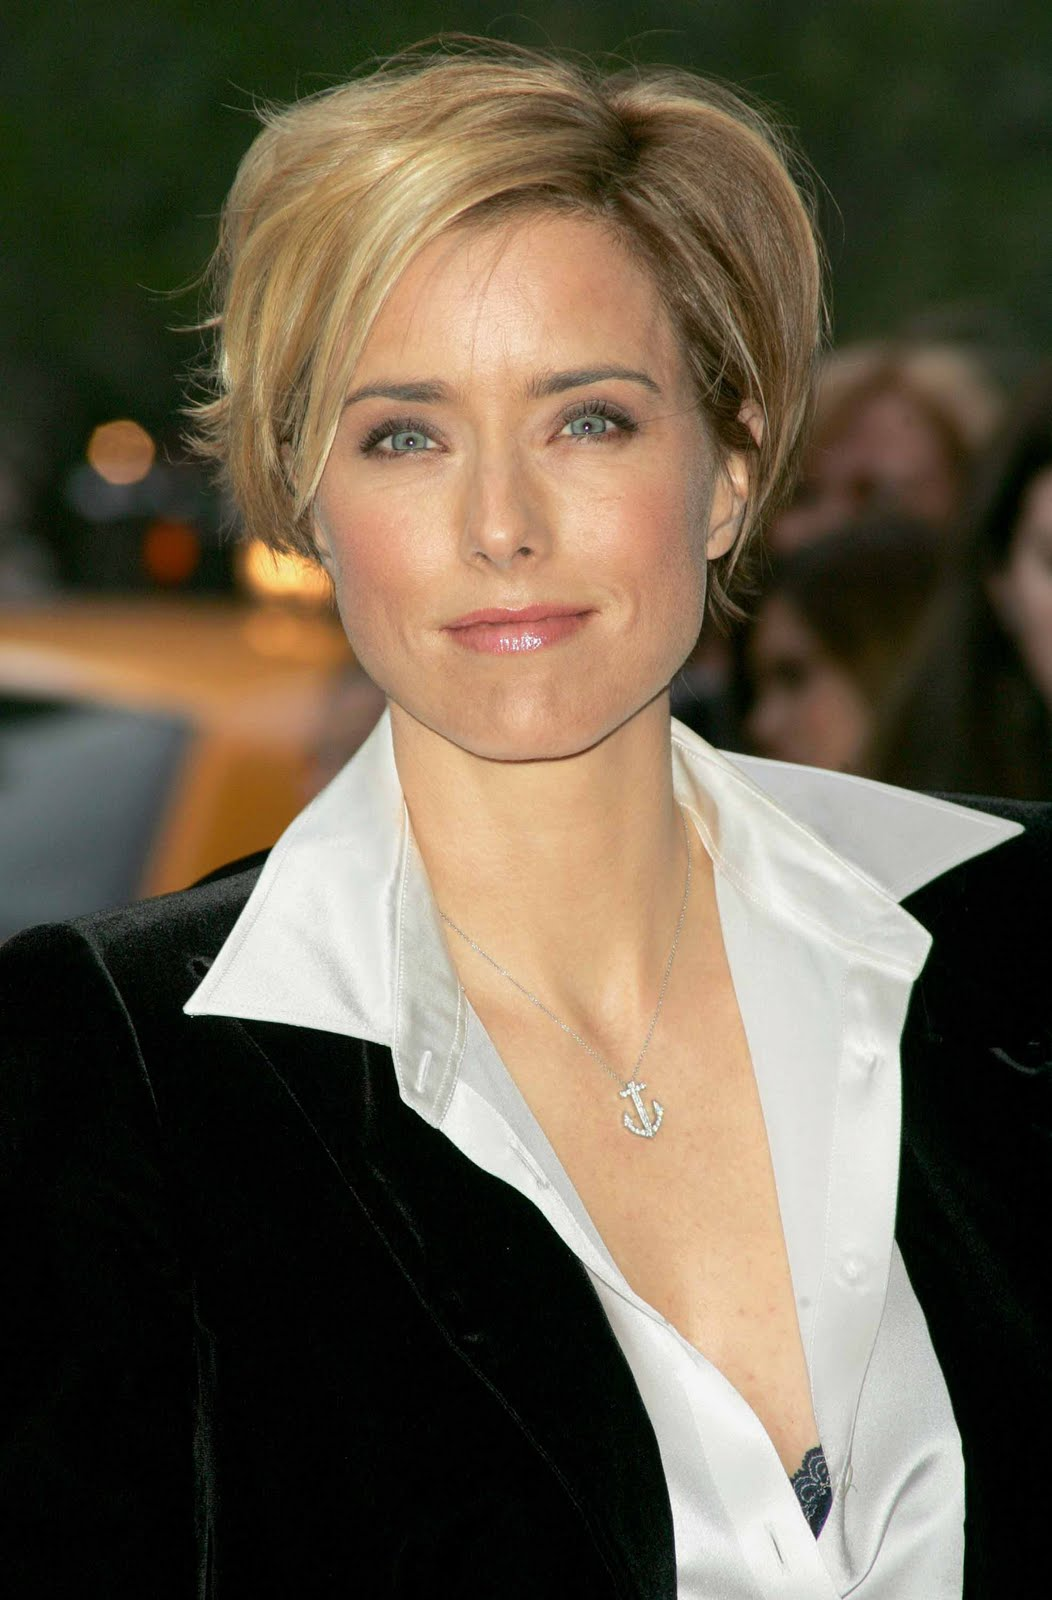 Tea Leoni Ultimate Image